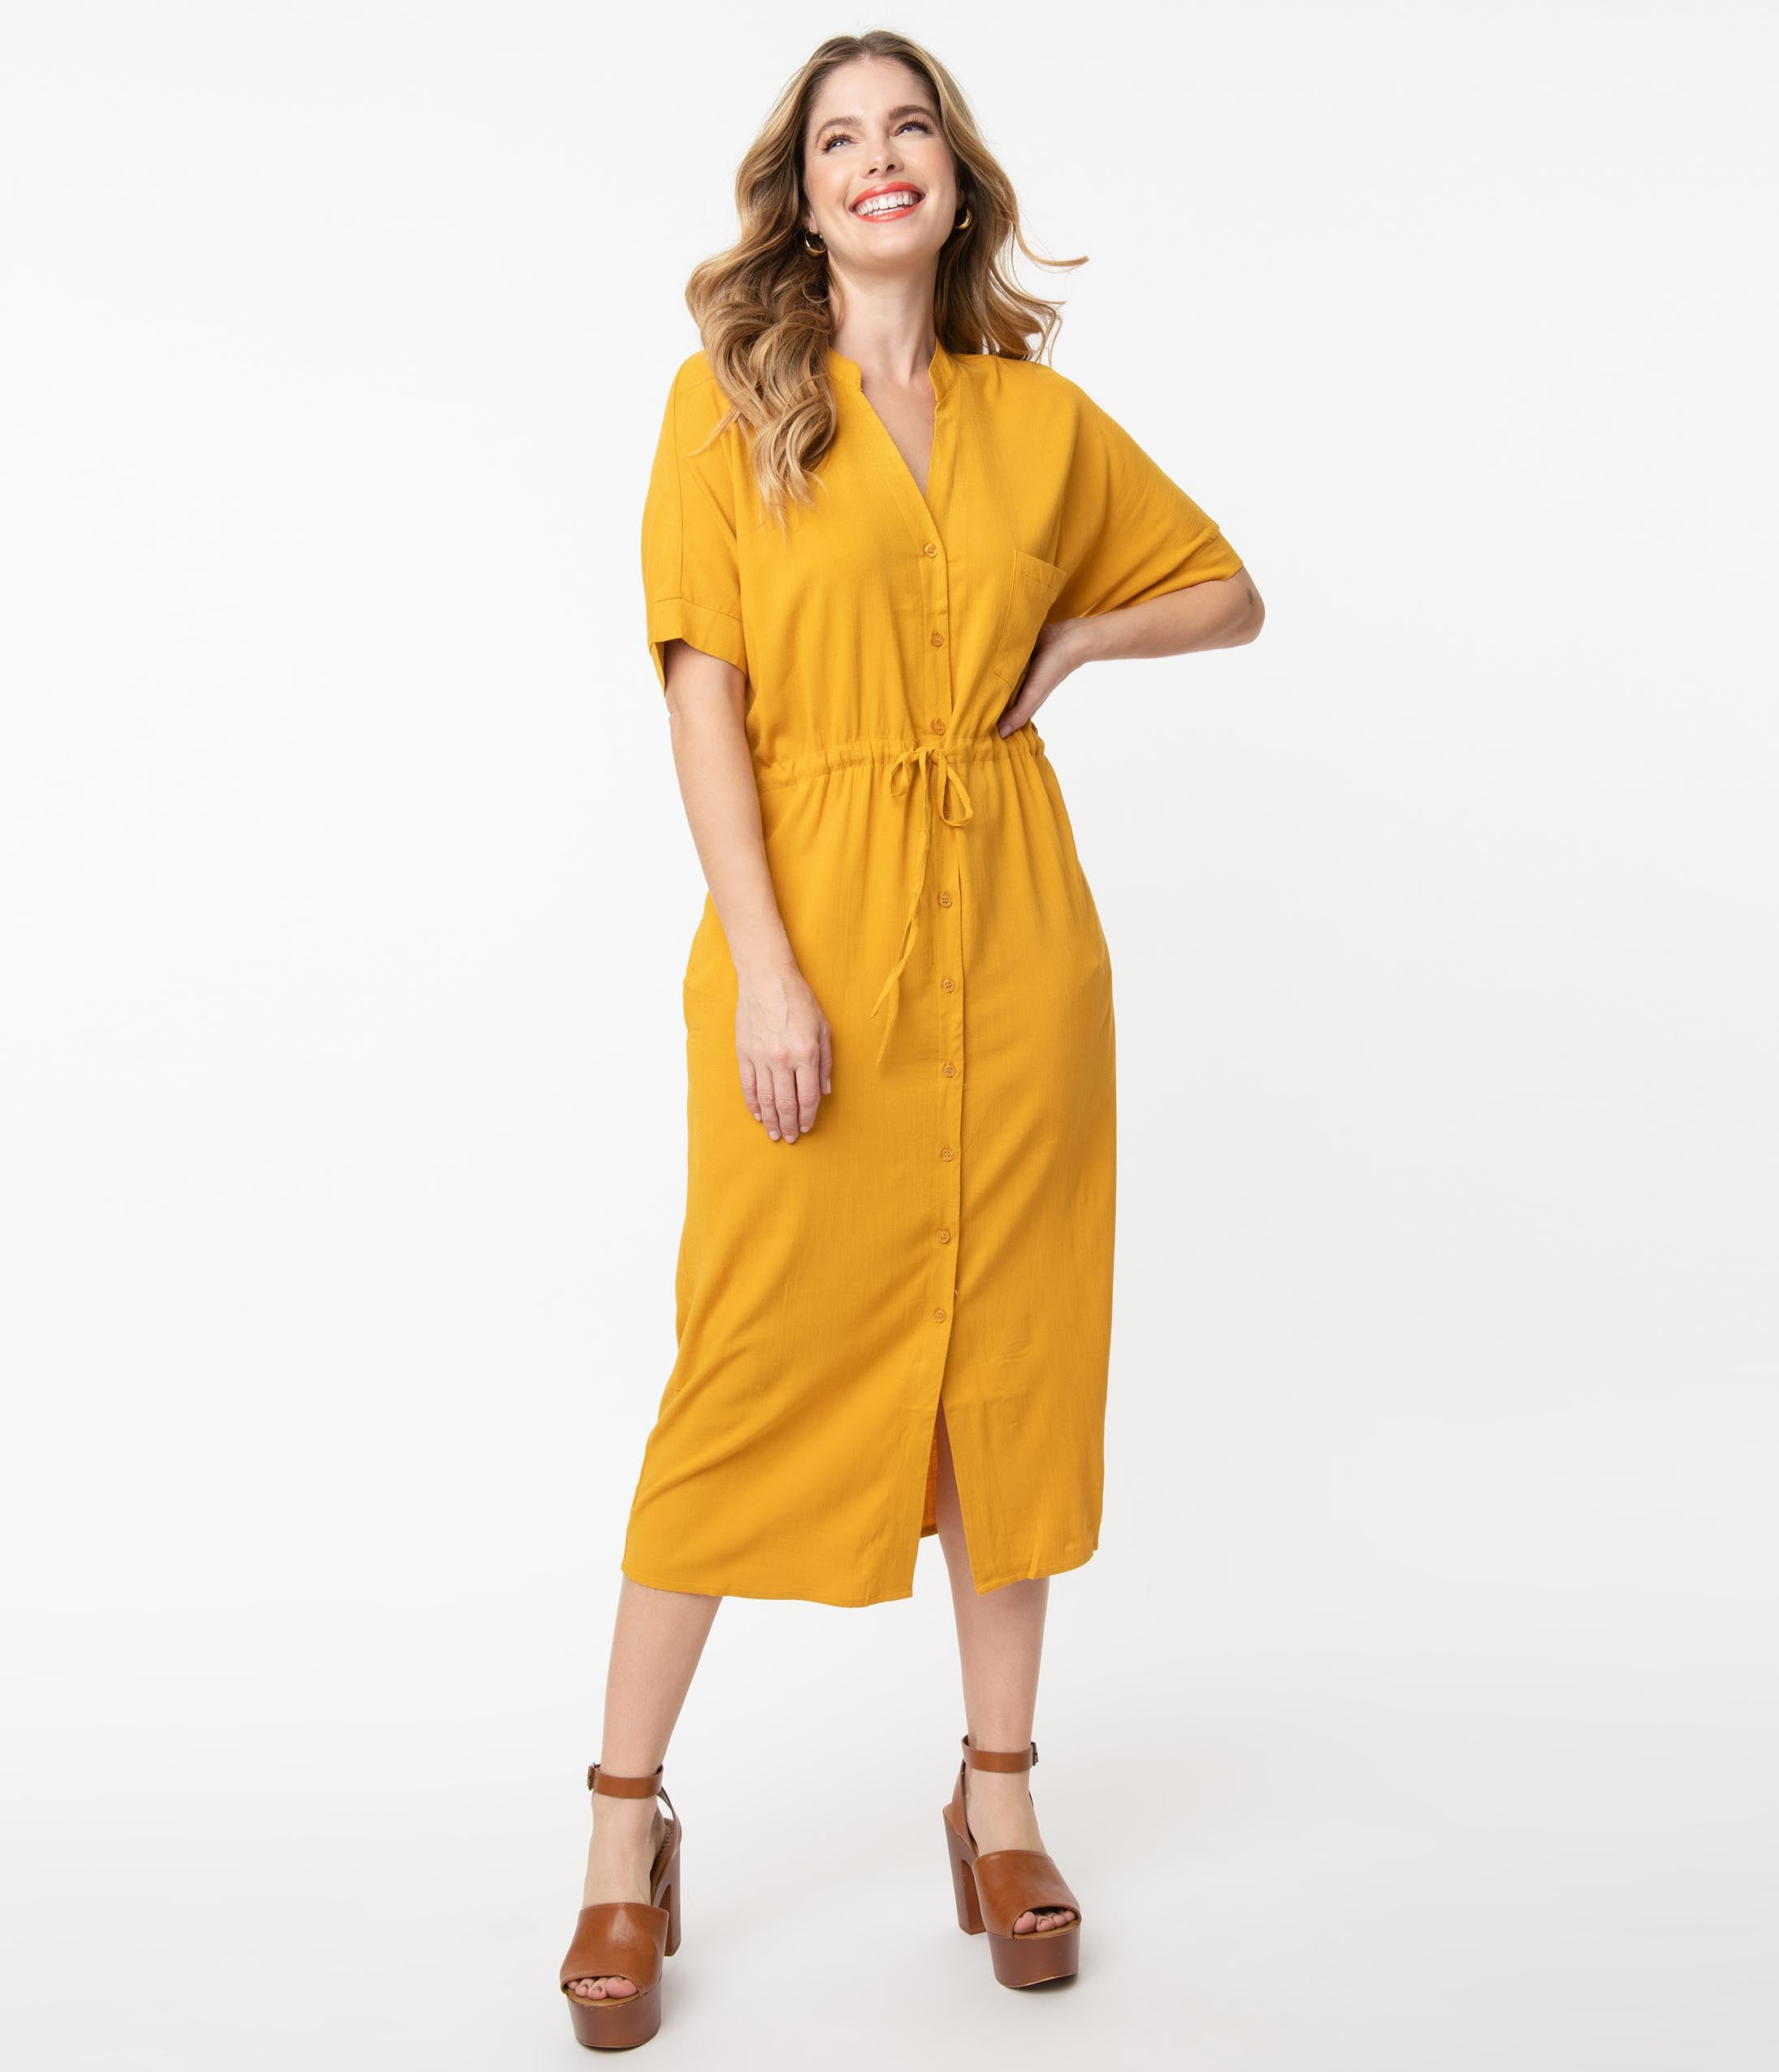 70s Clothes | Hippie Clothes & Outfits 1970S Mustard Button Up Midi Shirtdress $68.00 AT vintagedancer.com